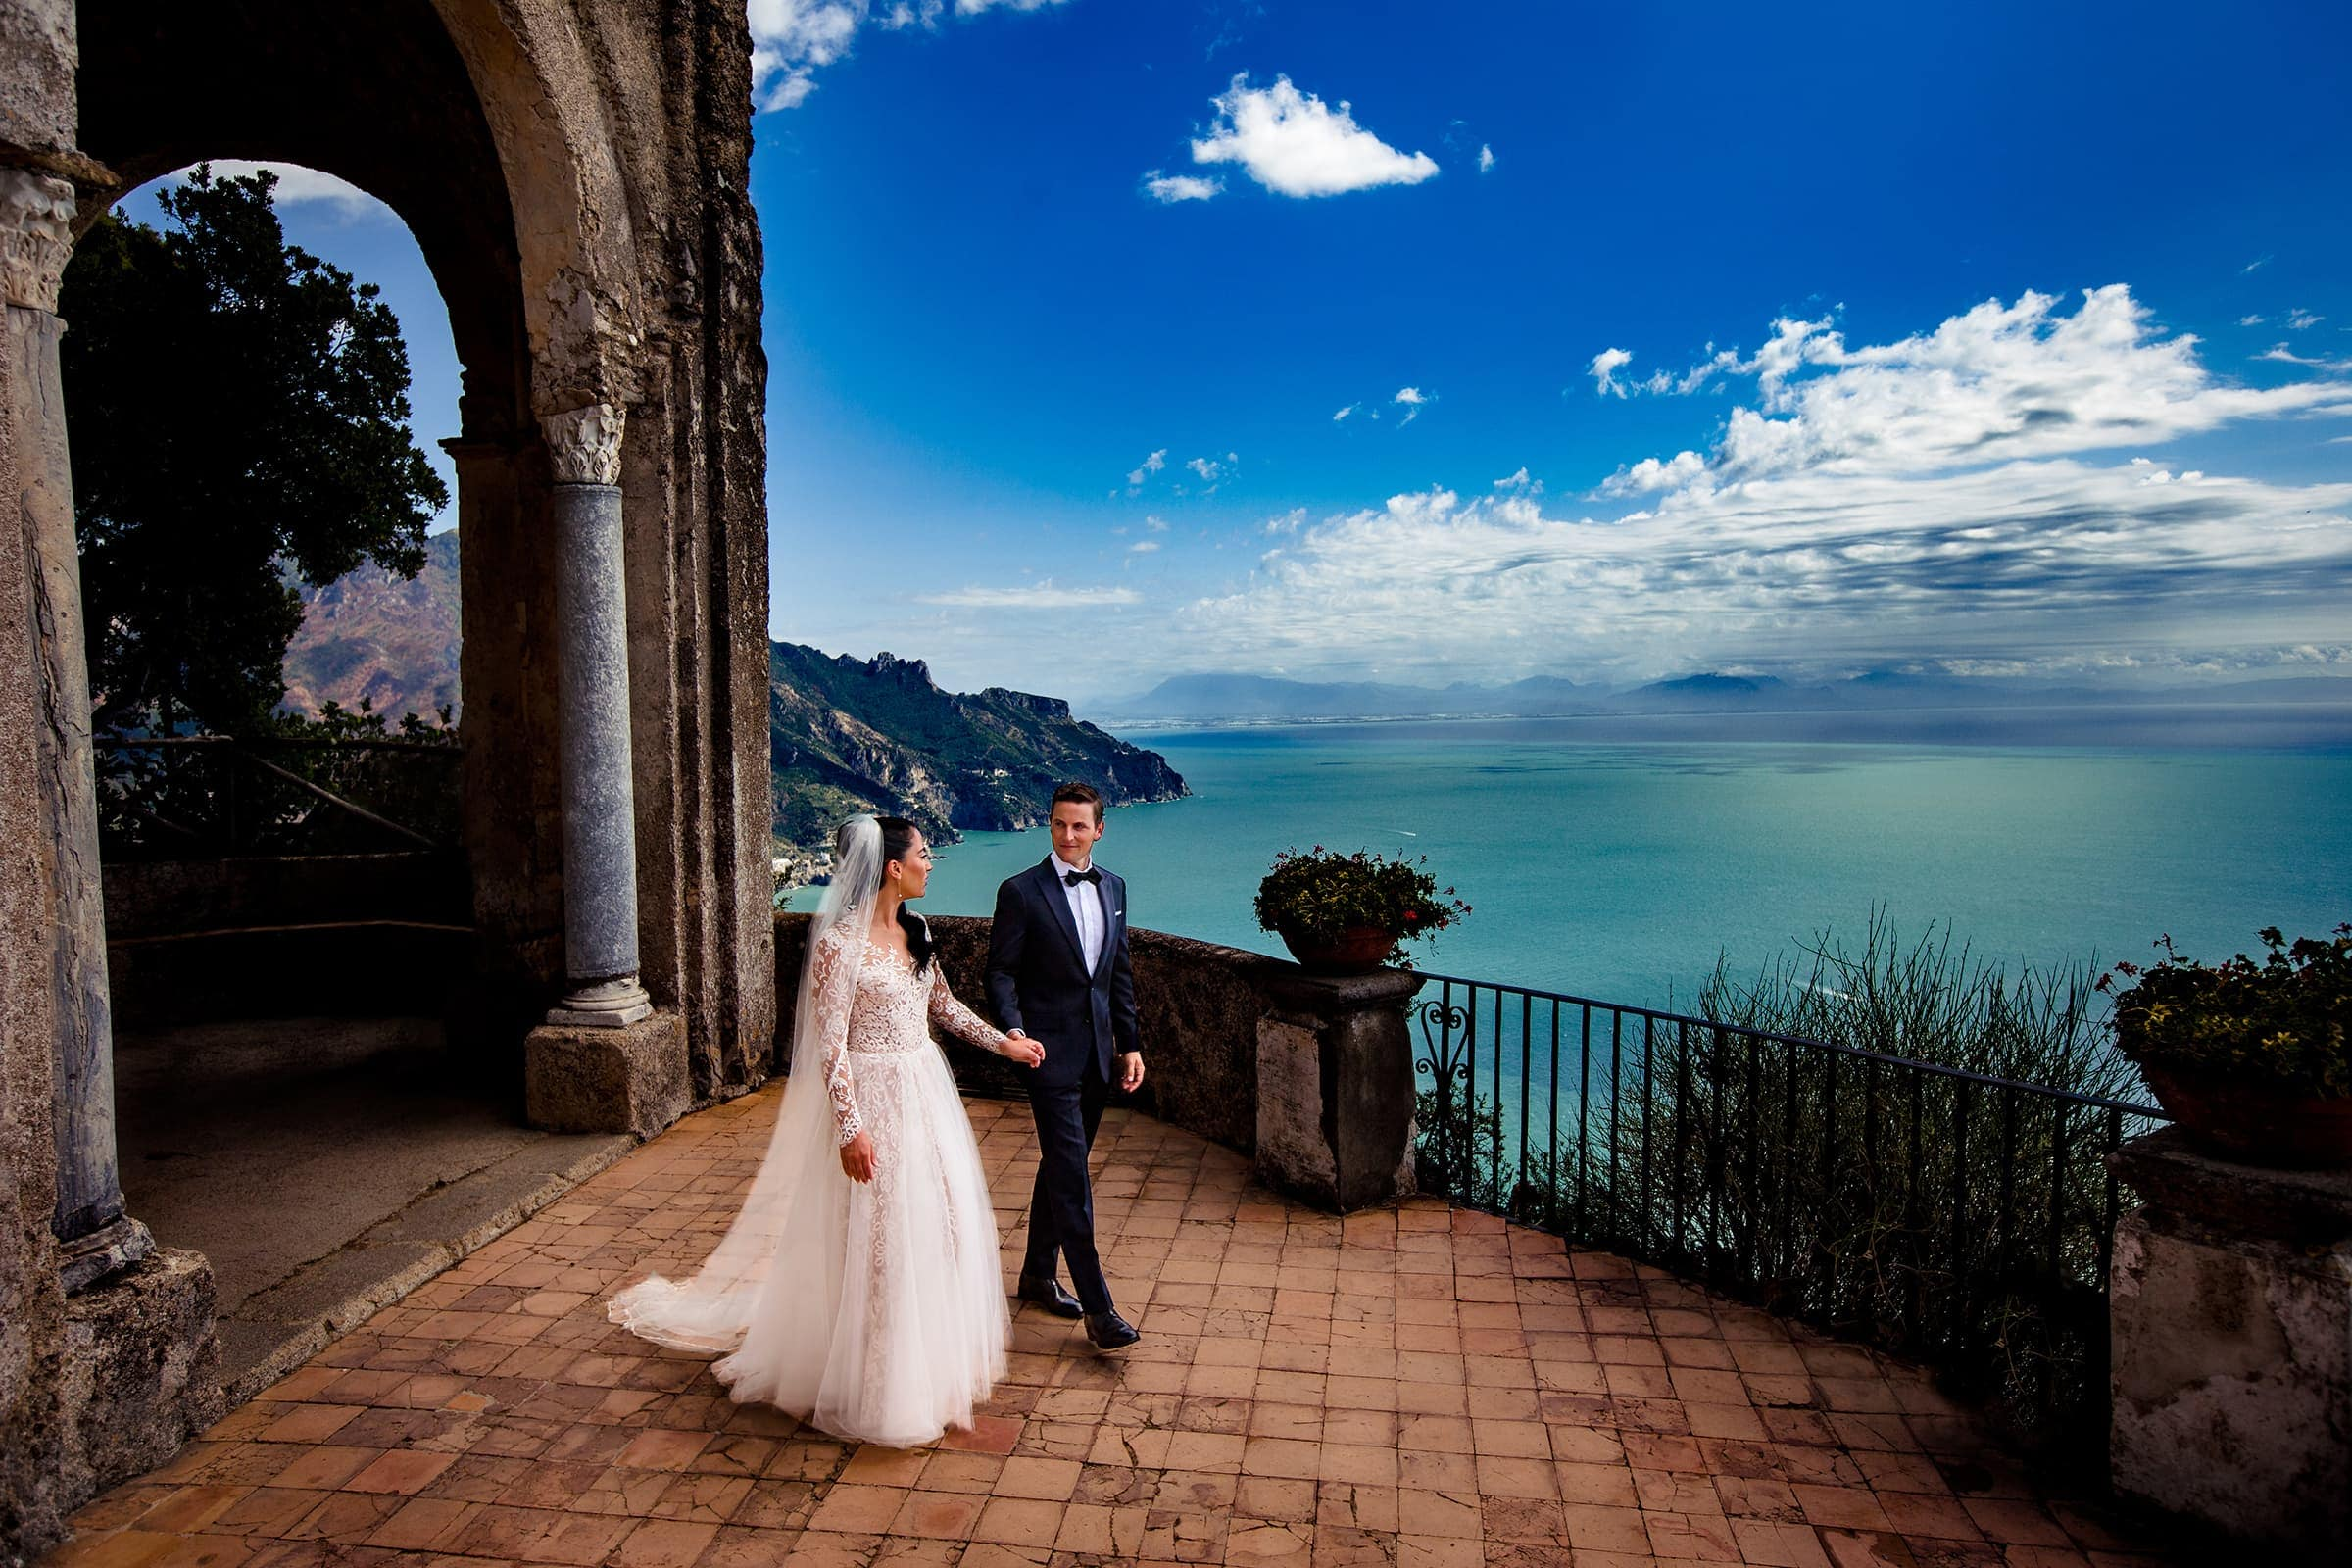 Couple walking in an epic elopement location called Villa Cimbrone in Ravello, Italy